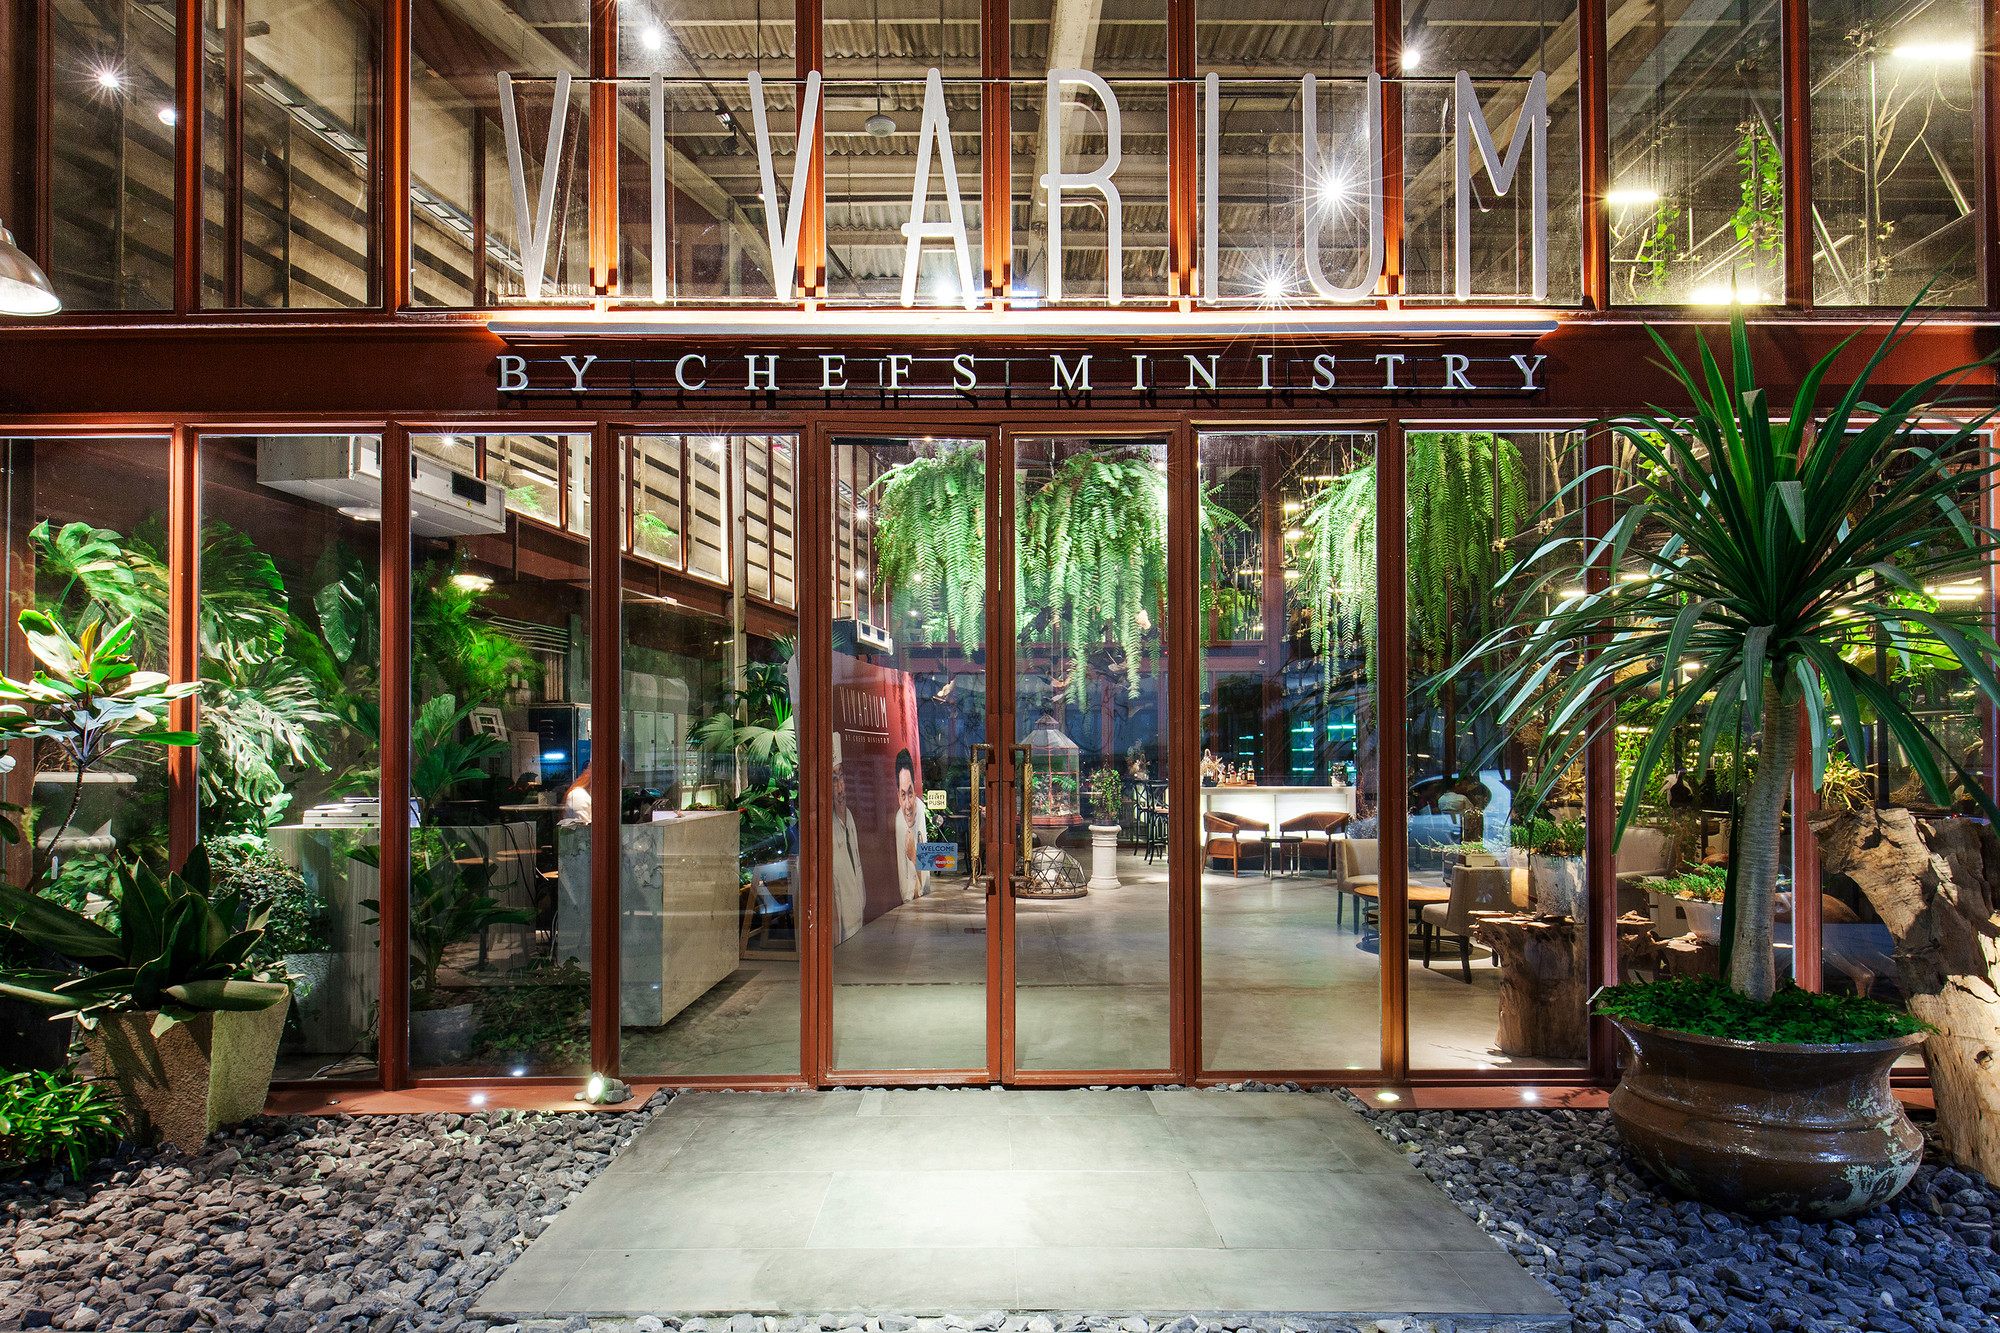 Container Haus New York Gallery Of Vivarium Hypothesis 43 Stu D O Architects 7